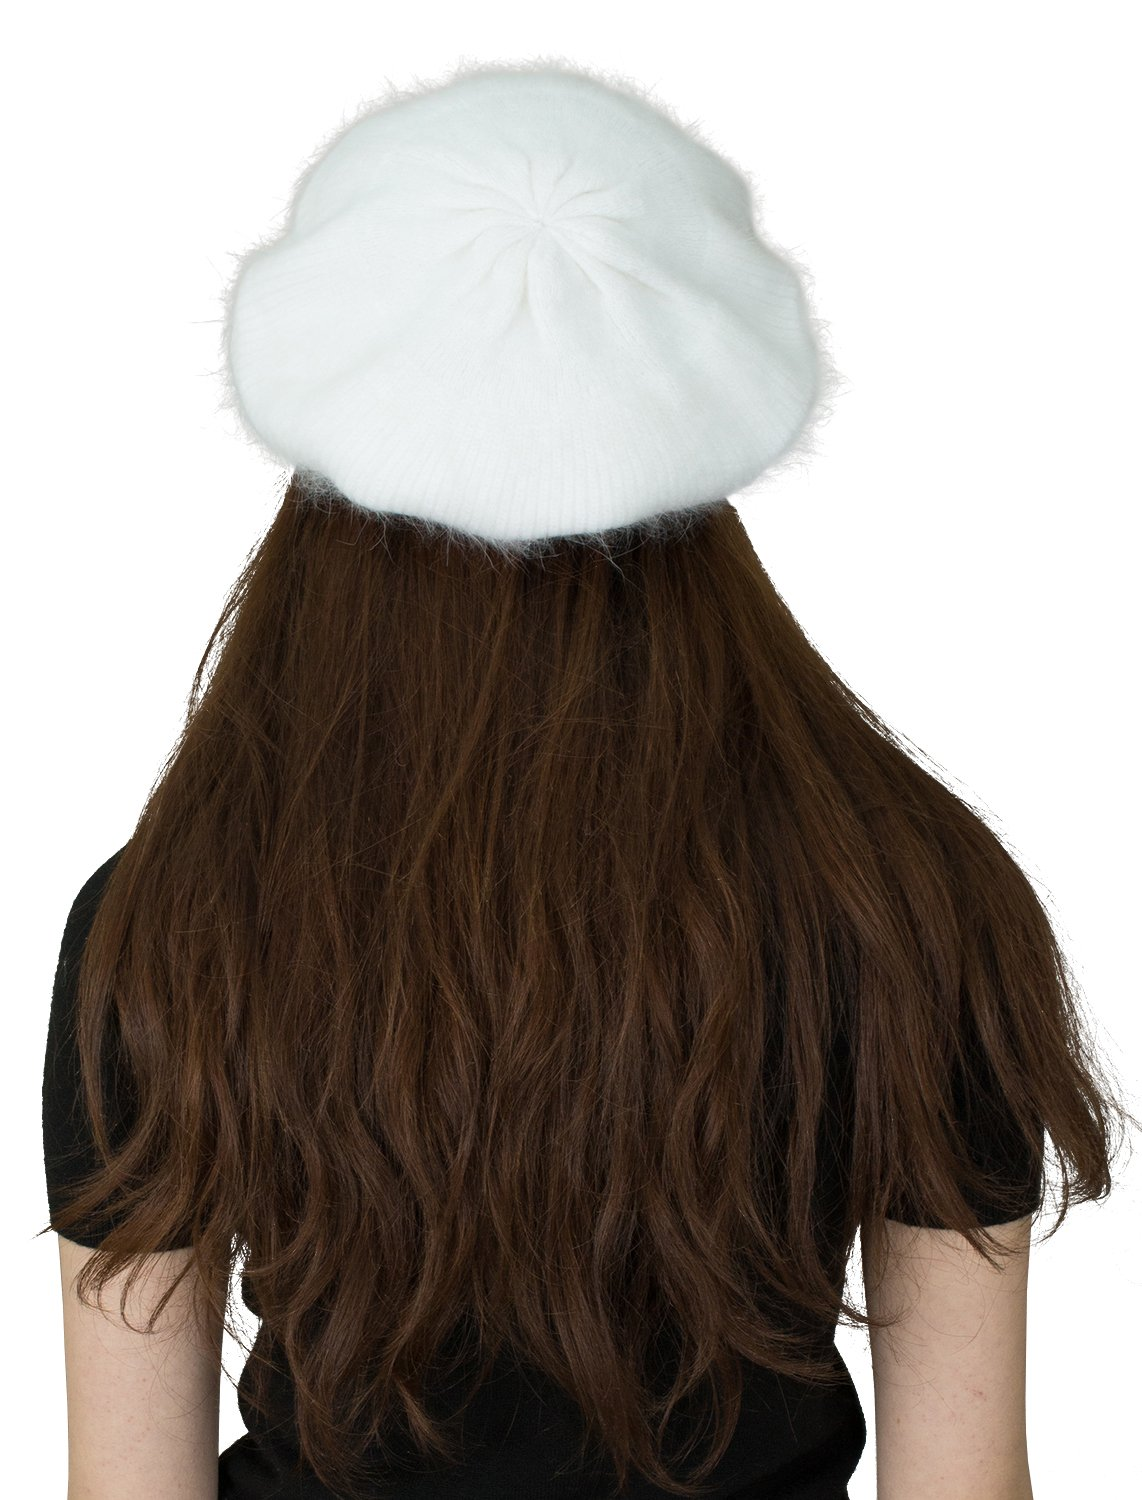 CapHouse Fine Ribbed Womens Angora Knit Winter Beanie Hat,Cream by CapHouse (Image #4)